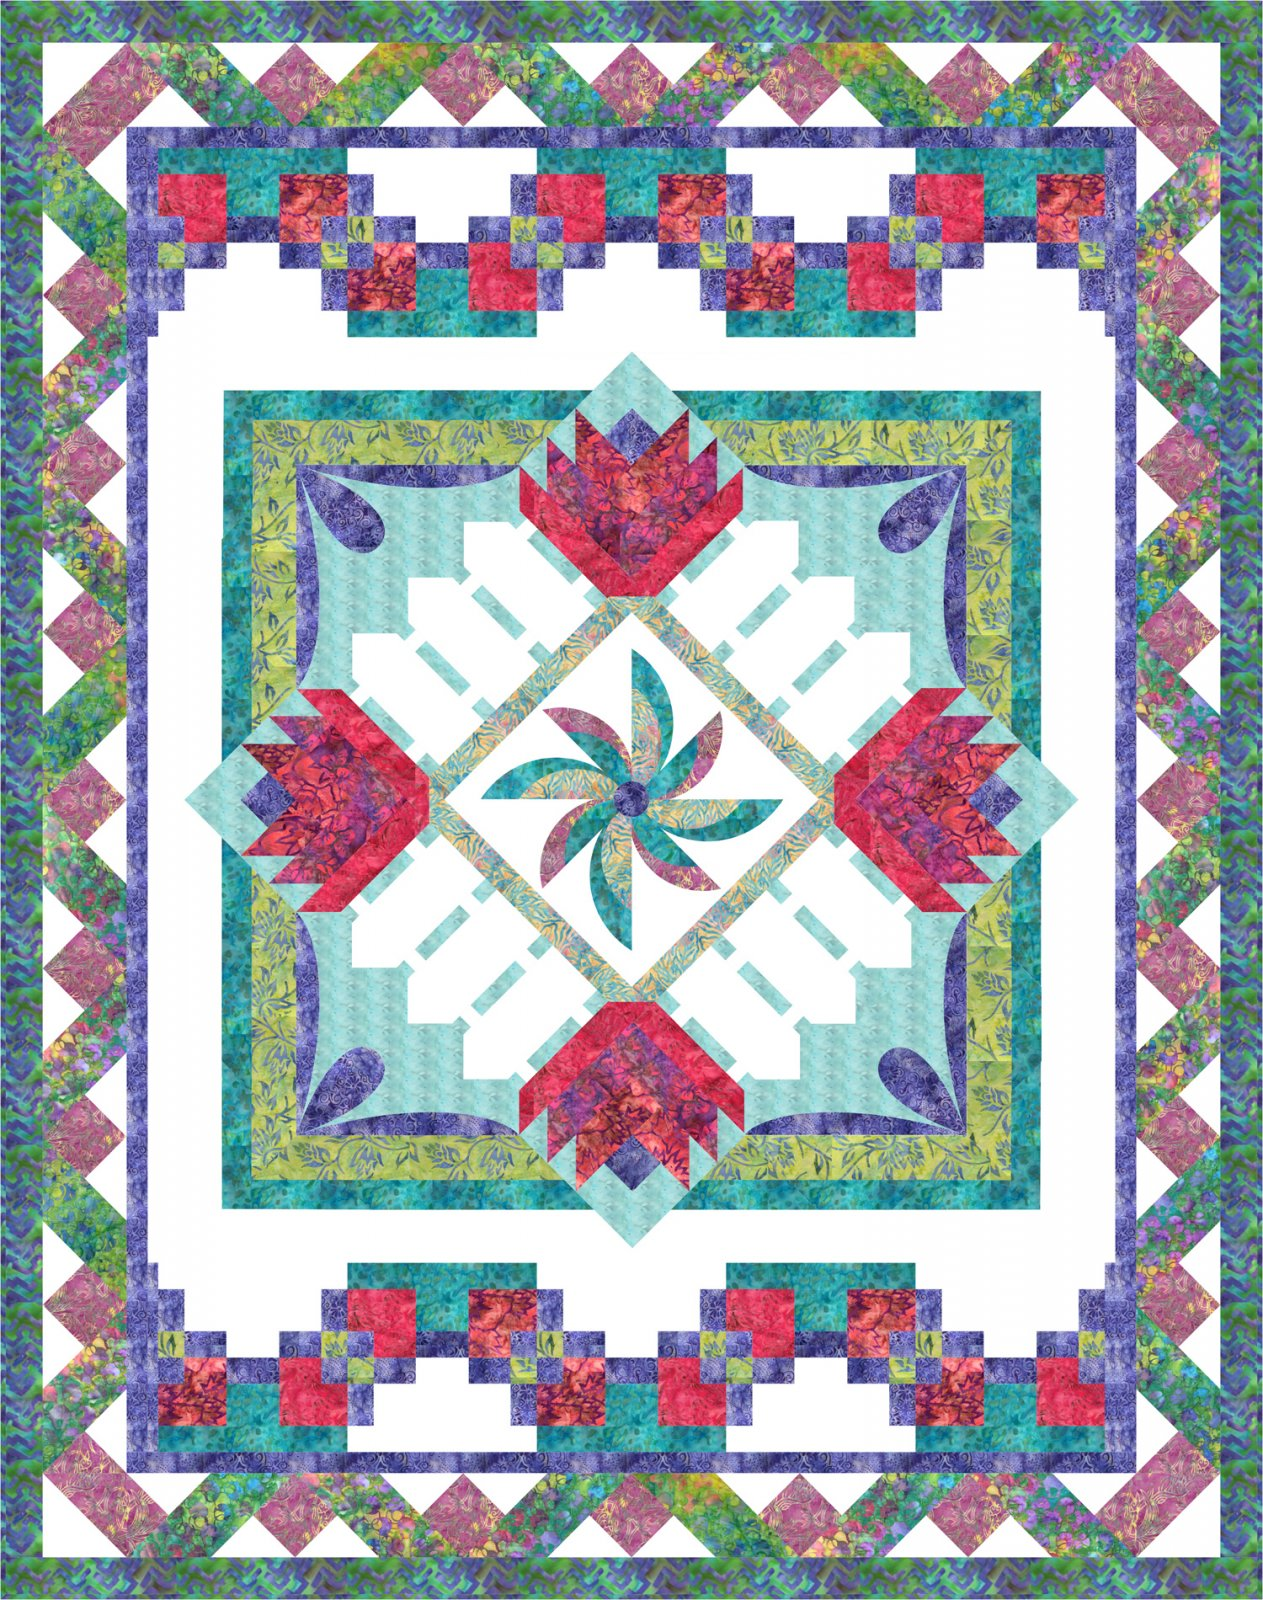 Sale 40% off - Enchanted Arbor Block of the Month - Complete Kit